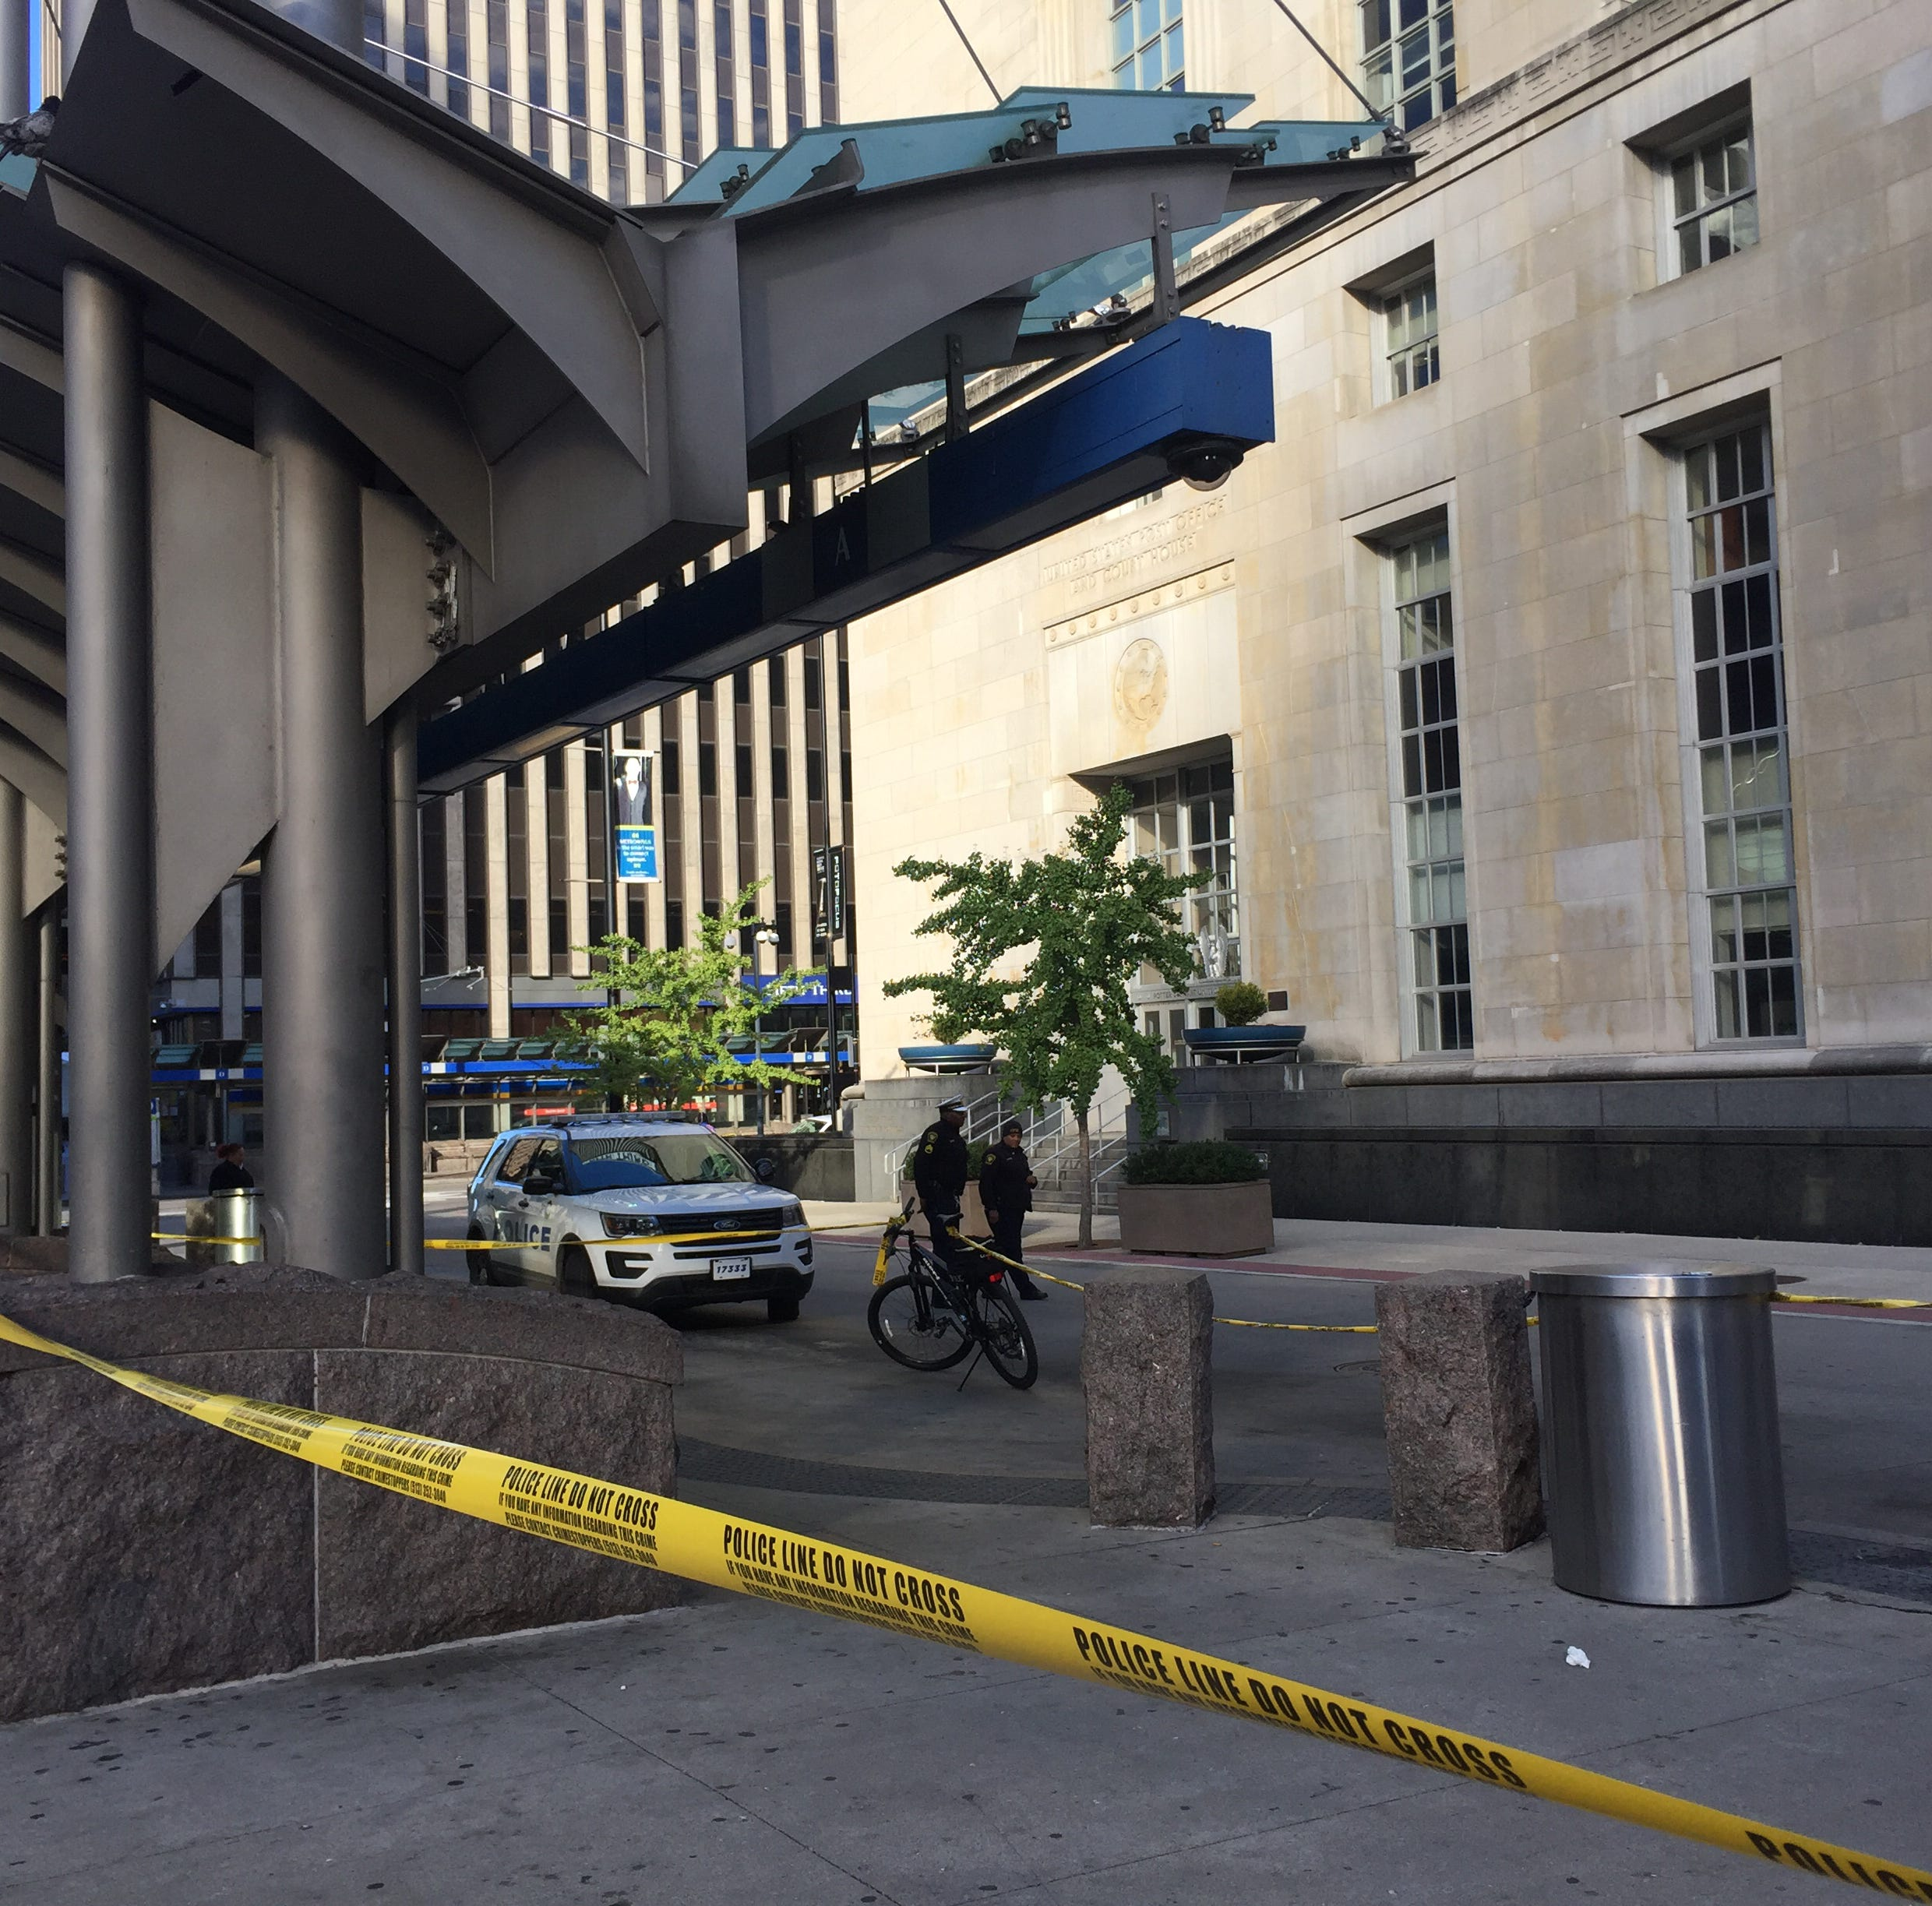 Cincinnati police: Teen struck in Downtown shooting: 'This wasn't a random act'